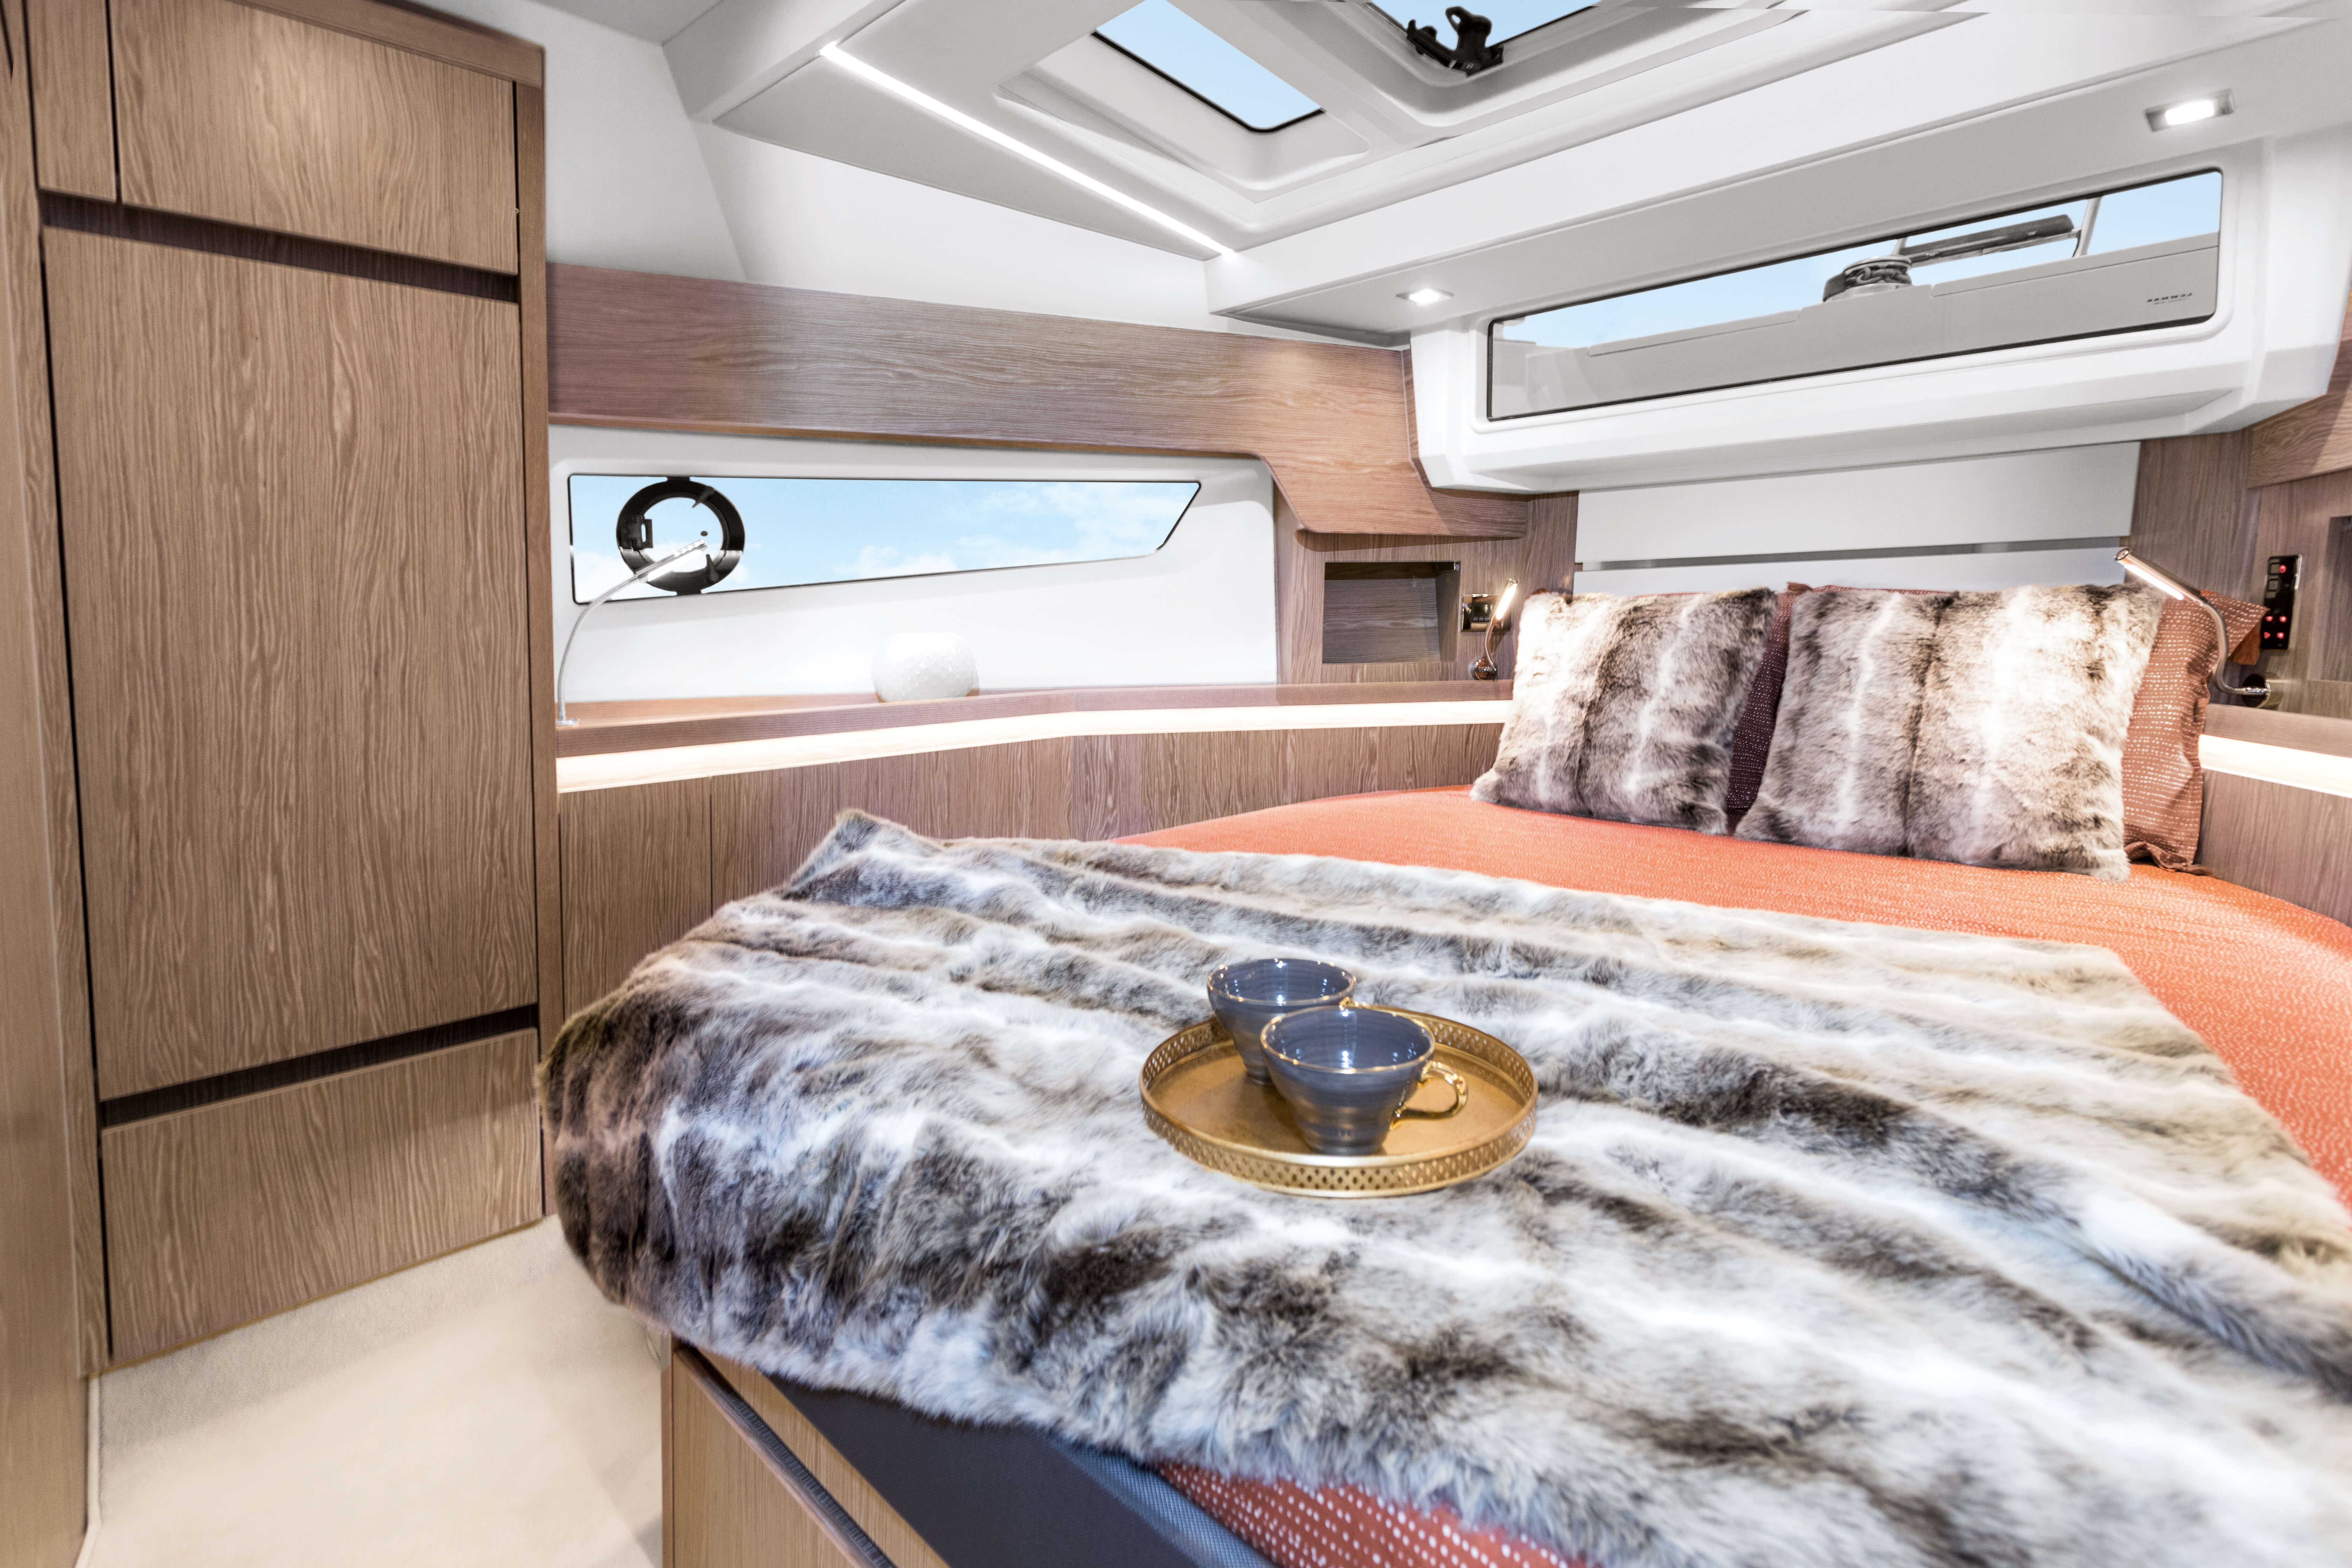 Sealine F430 Intérieur vue | VIP cabin with double berth, 2 wardrobes and sideboards with stowage and two bedside tables. 1 drawer underneath the bed. 3 Skylights, one openable. | Sealine